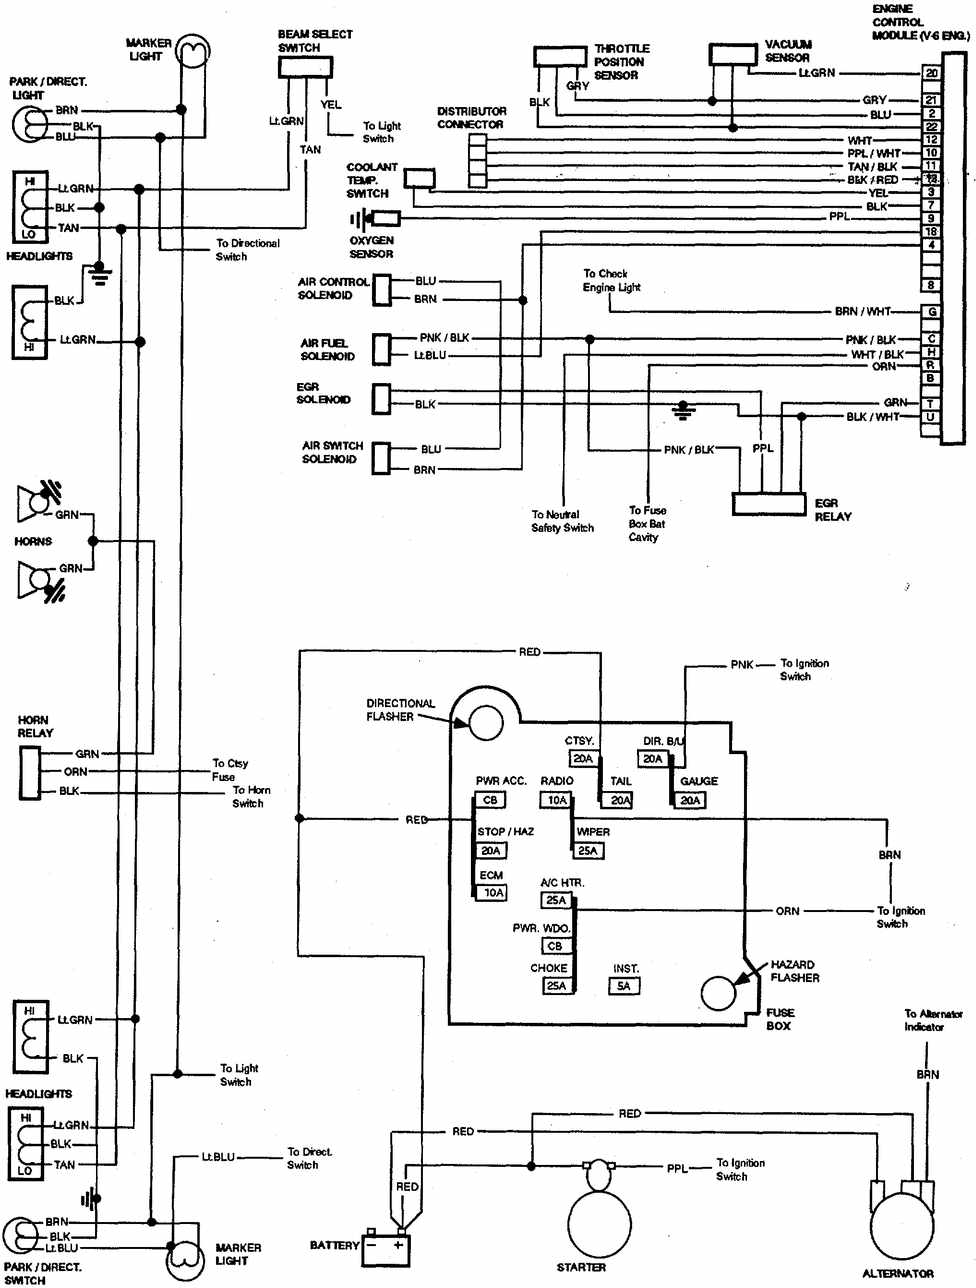 small resolution of chevrolet v8 trucks 1981 1987 electrical wiring diagram 1986 k5 blazer fuse box diagram 1984 k5